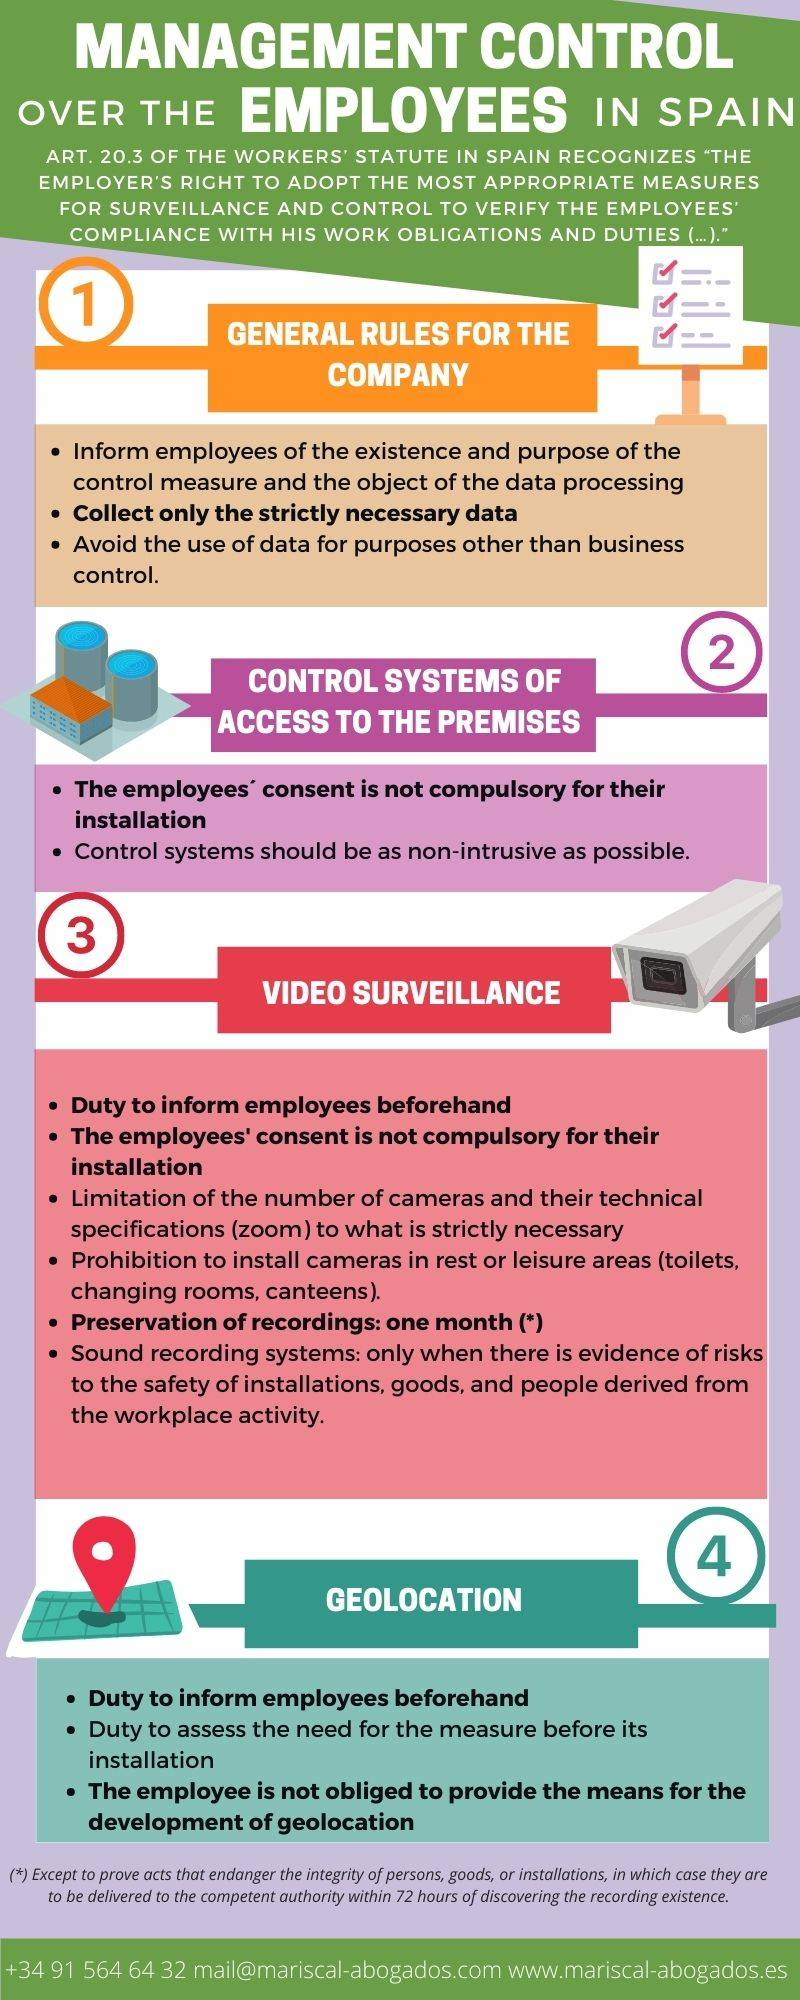 Control over the employees in Spain